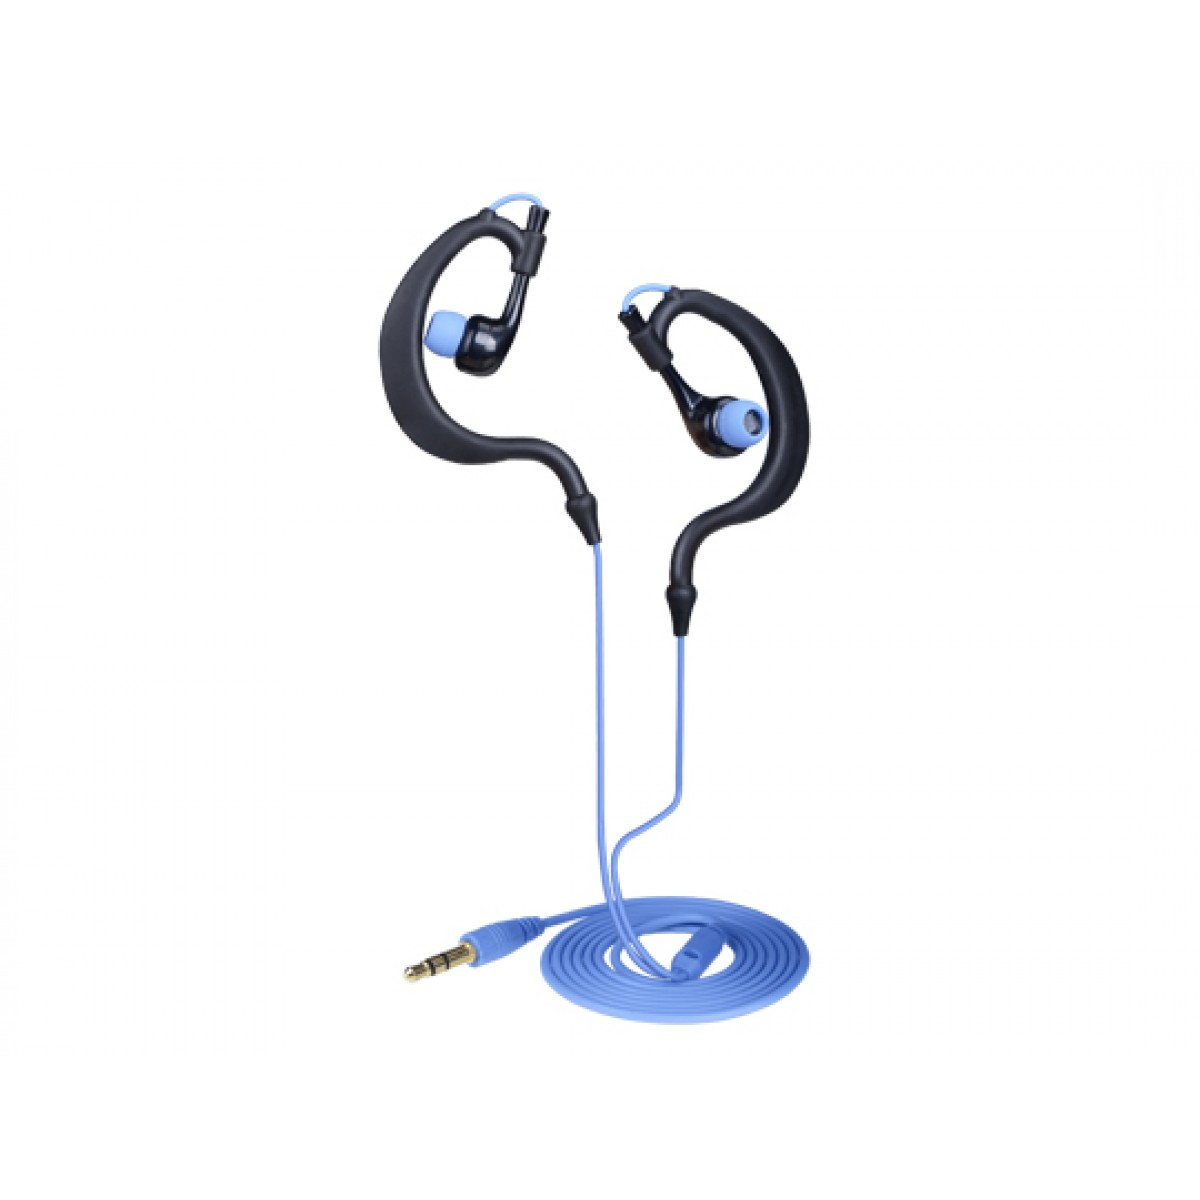 AVANTREE SAILFISH WATTERPROOF HEADPHONES